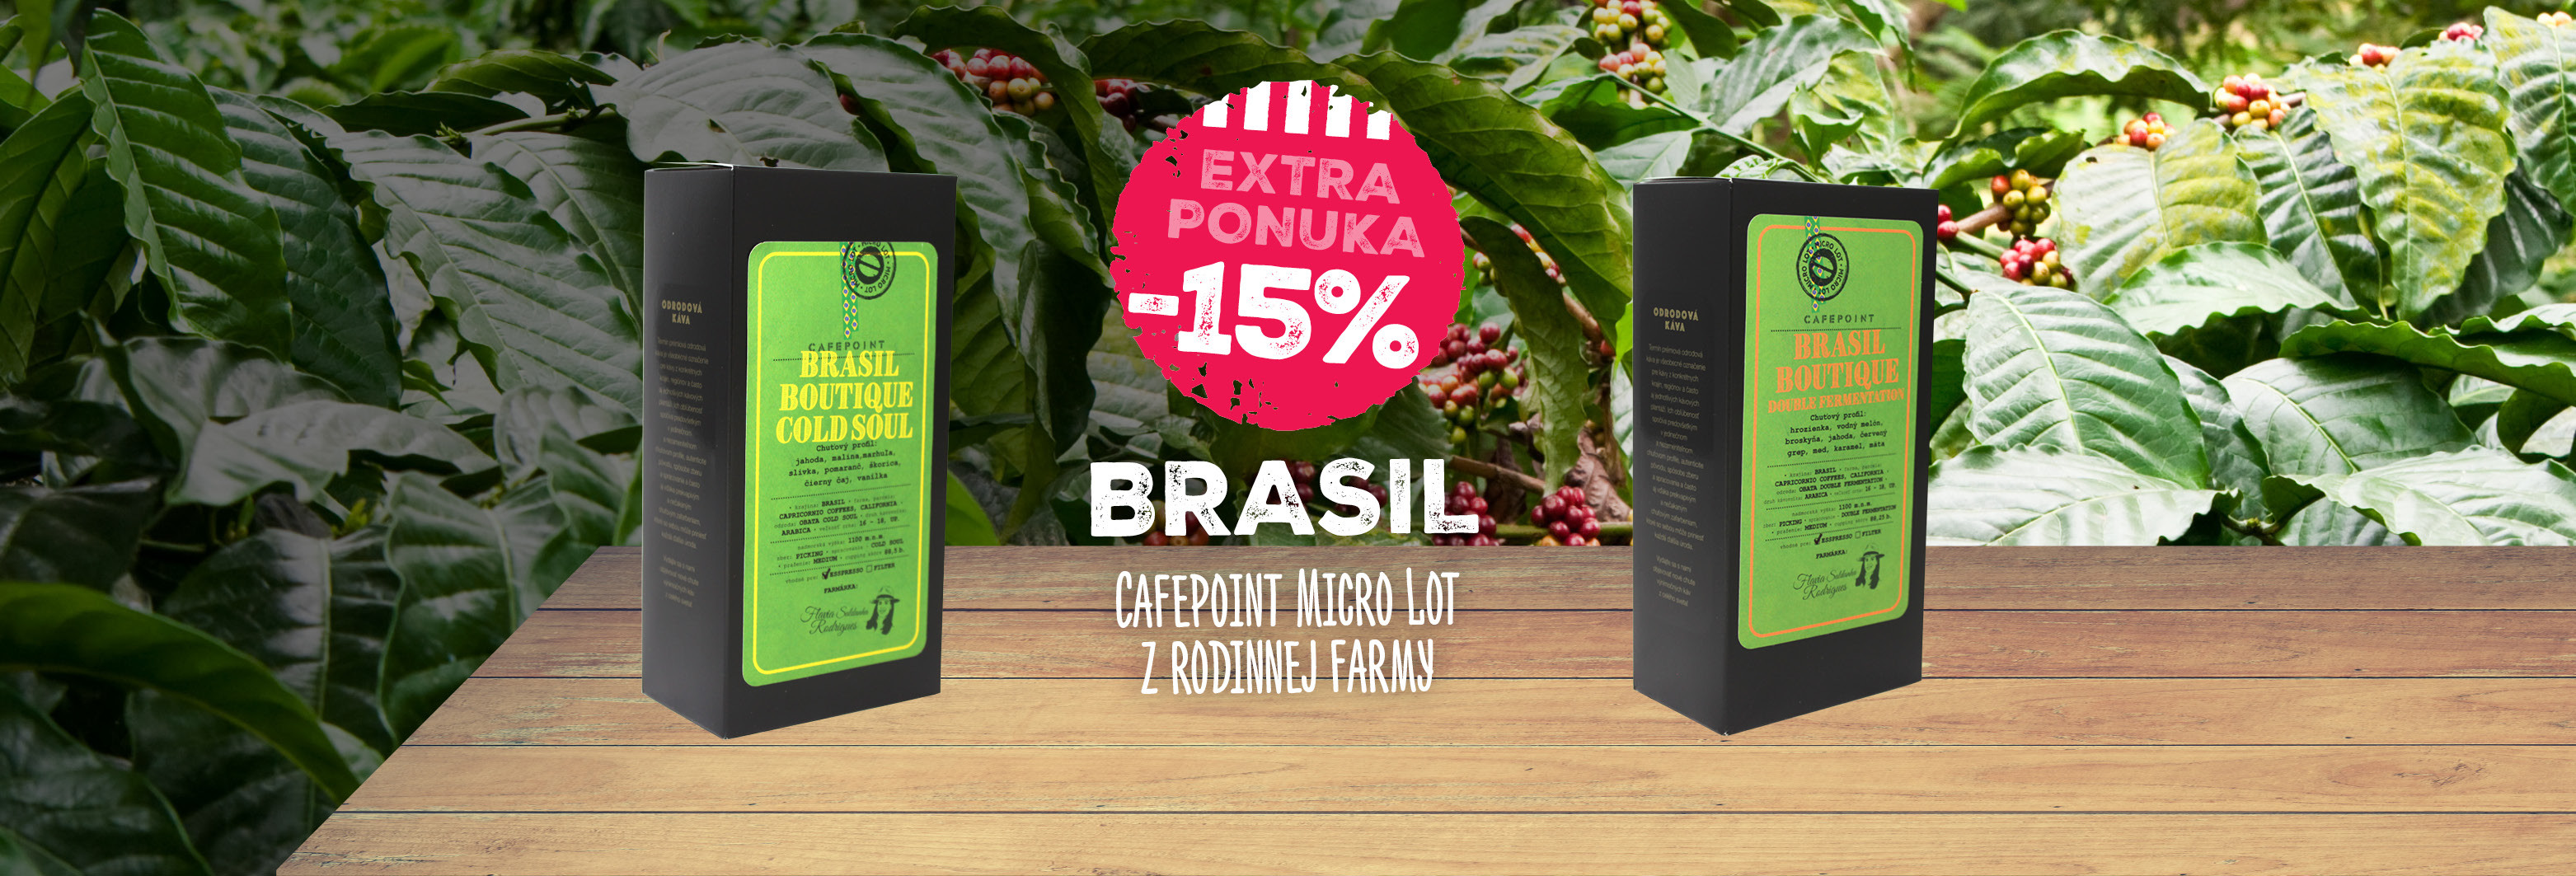 Cafepoint Micro Lot Brasil